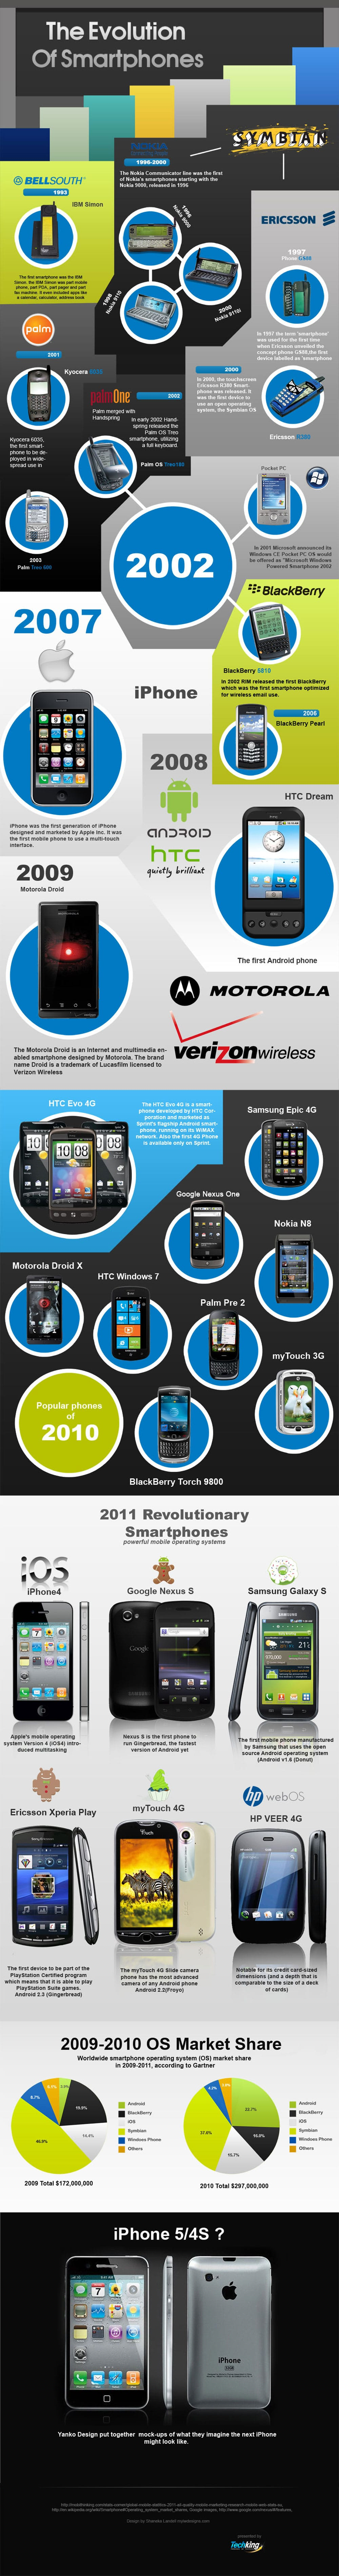 The History Of Smartphones Infographic